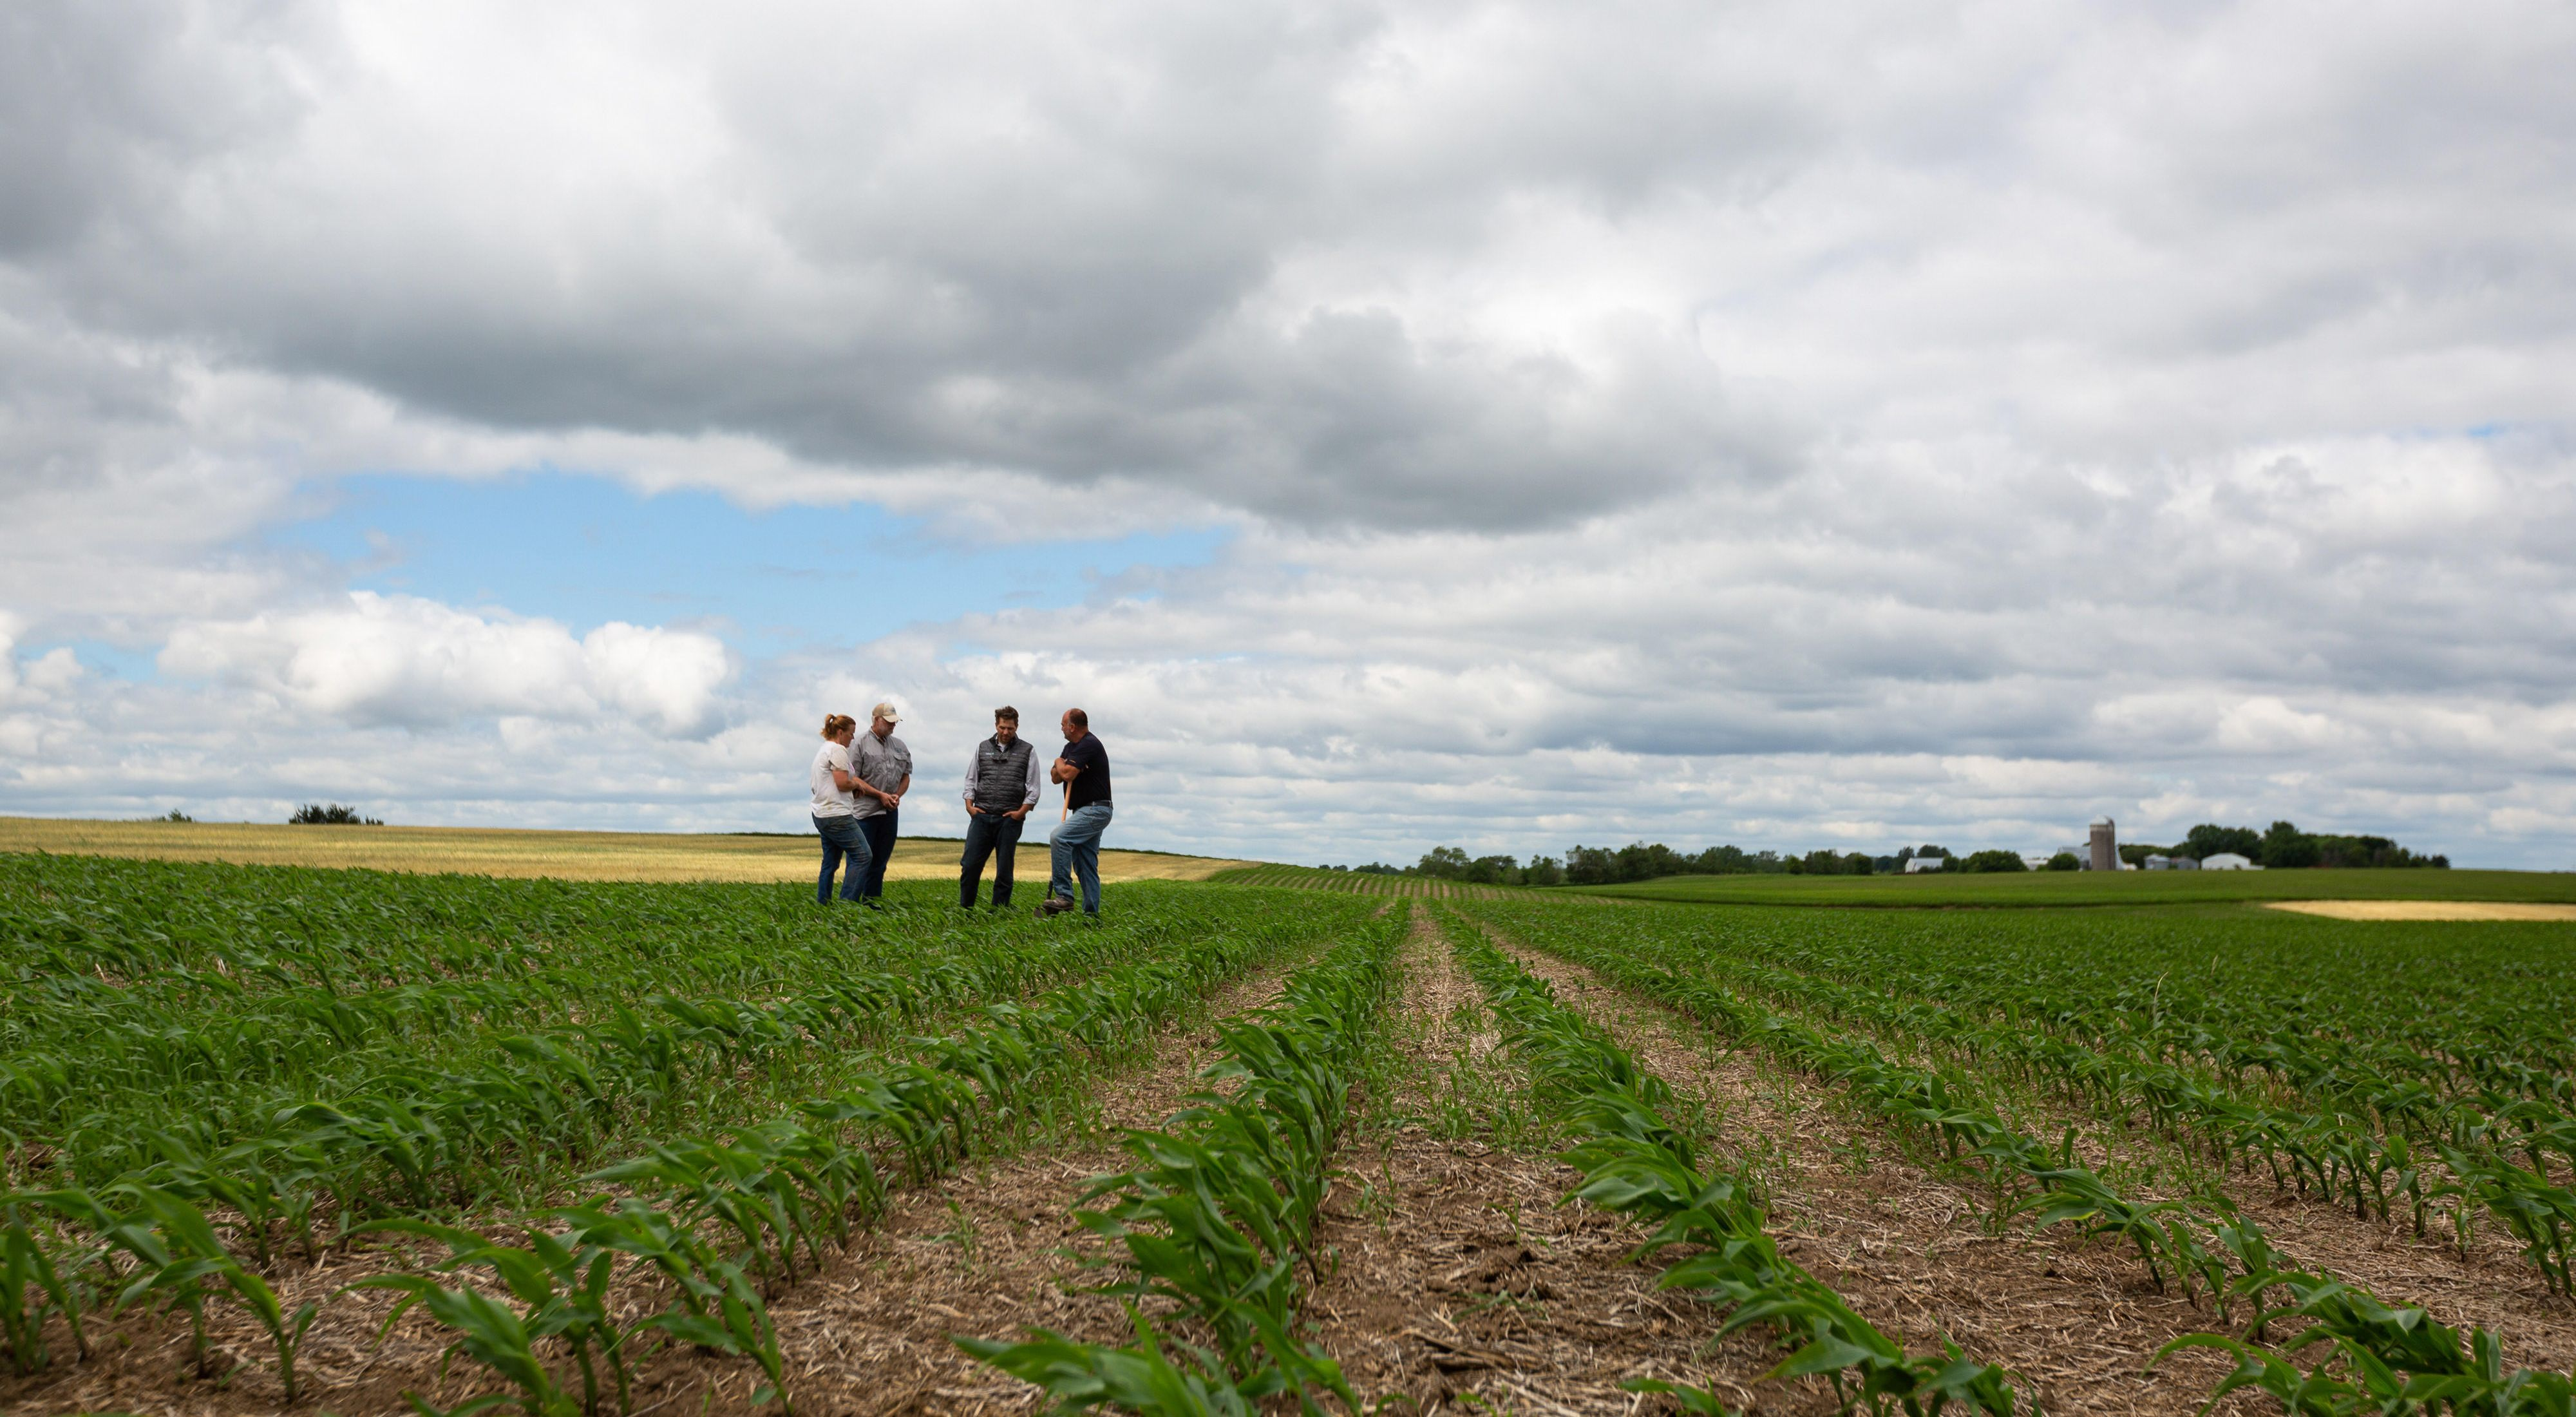 Conservation partners standing in a no-till farm field in Stearns County, Minnesota.